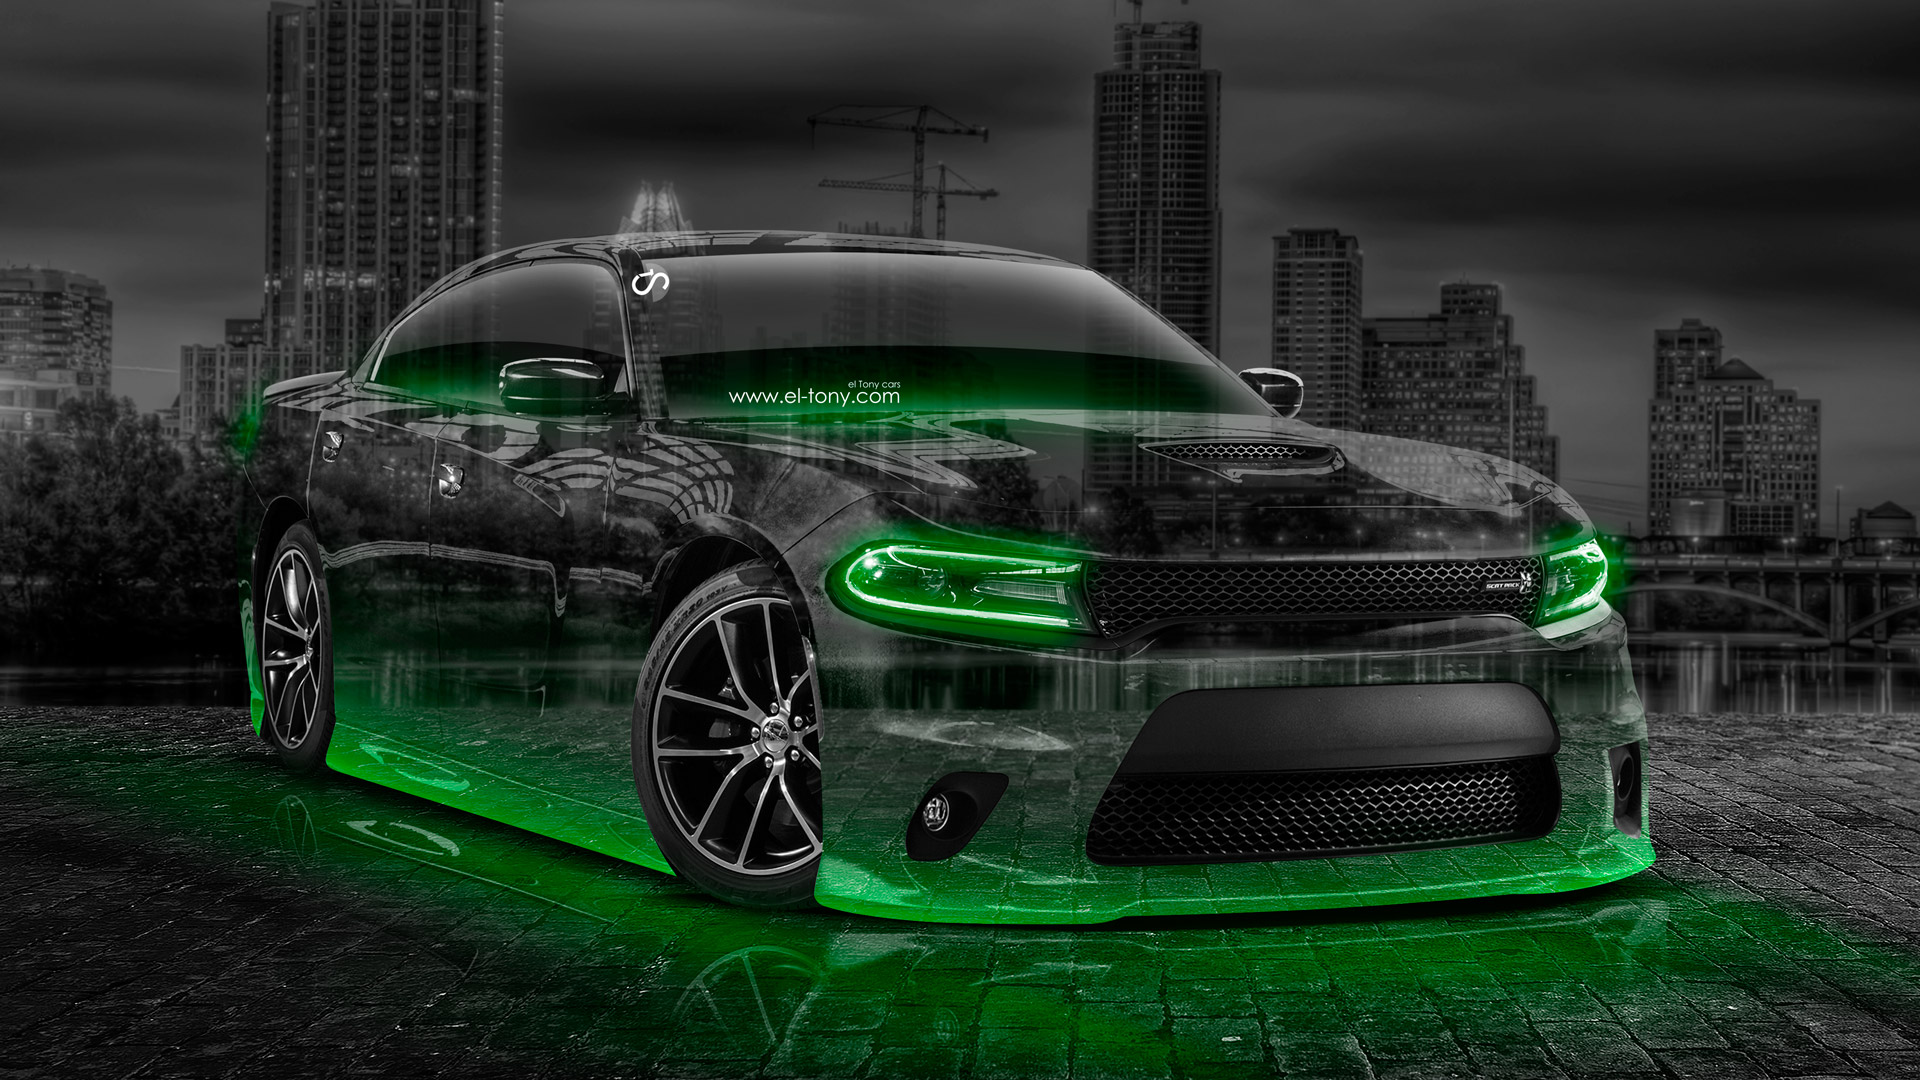 Dodge Charger Car Wallpapers Dodge Charger Rt Muscle Crystal City Car 2015 El Tony